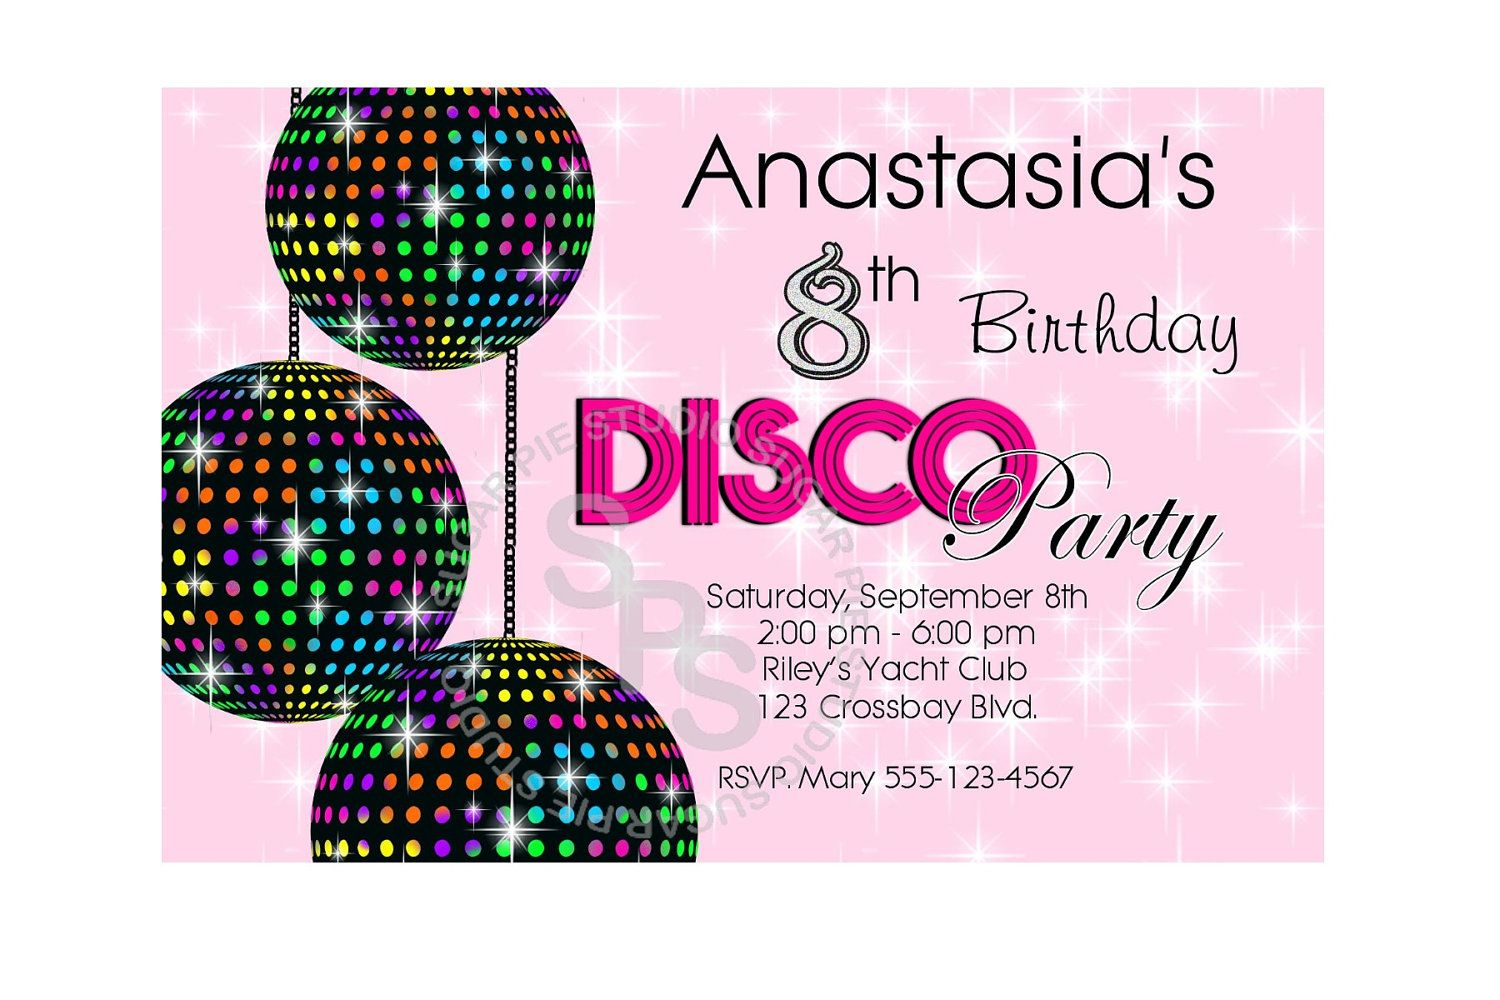 disco ball dance s party your photo girl boy birthday party disco ball dance 70s party your photo girl boy birthday party invitation or thank you